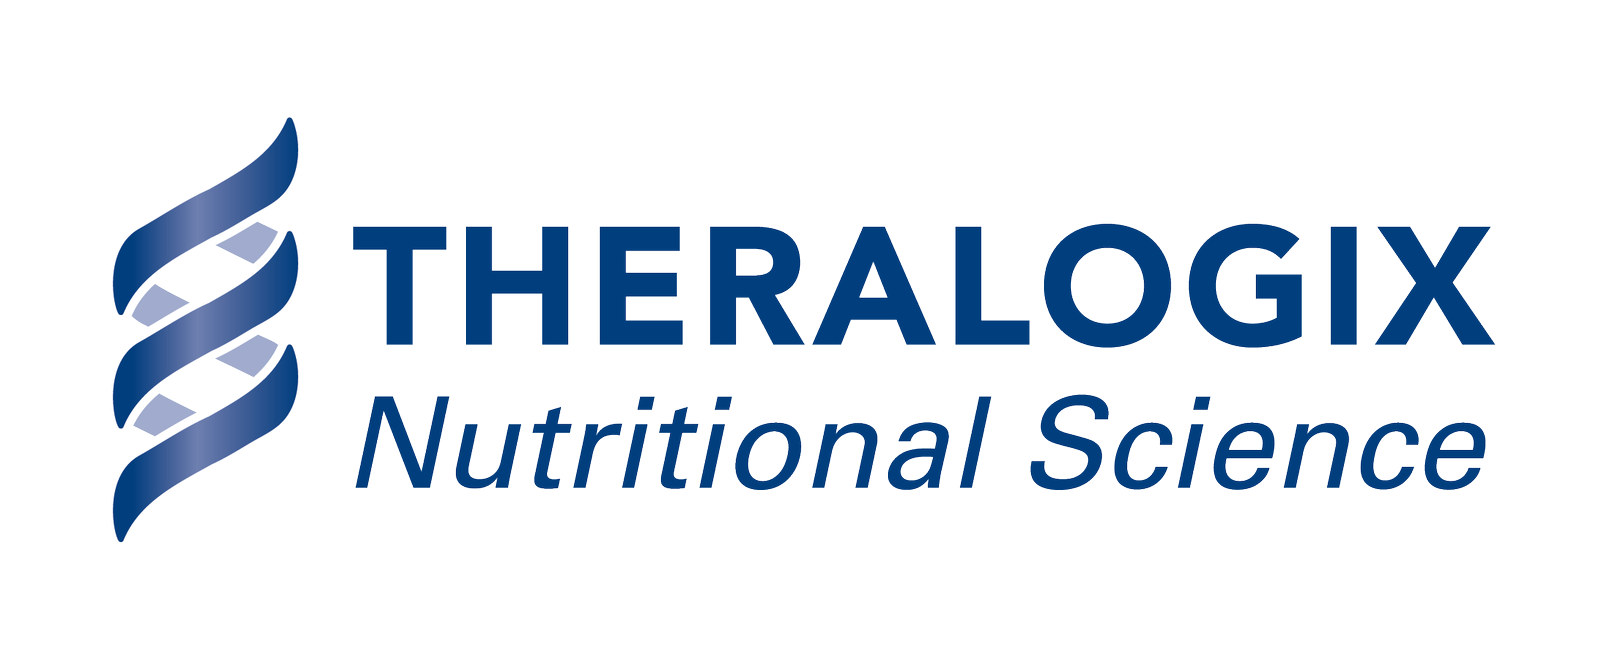 Theralogix logo